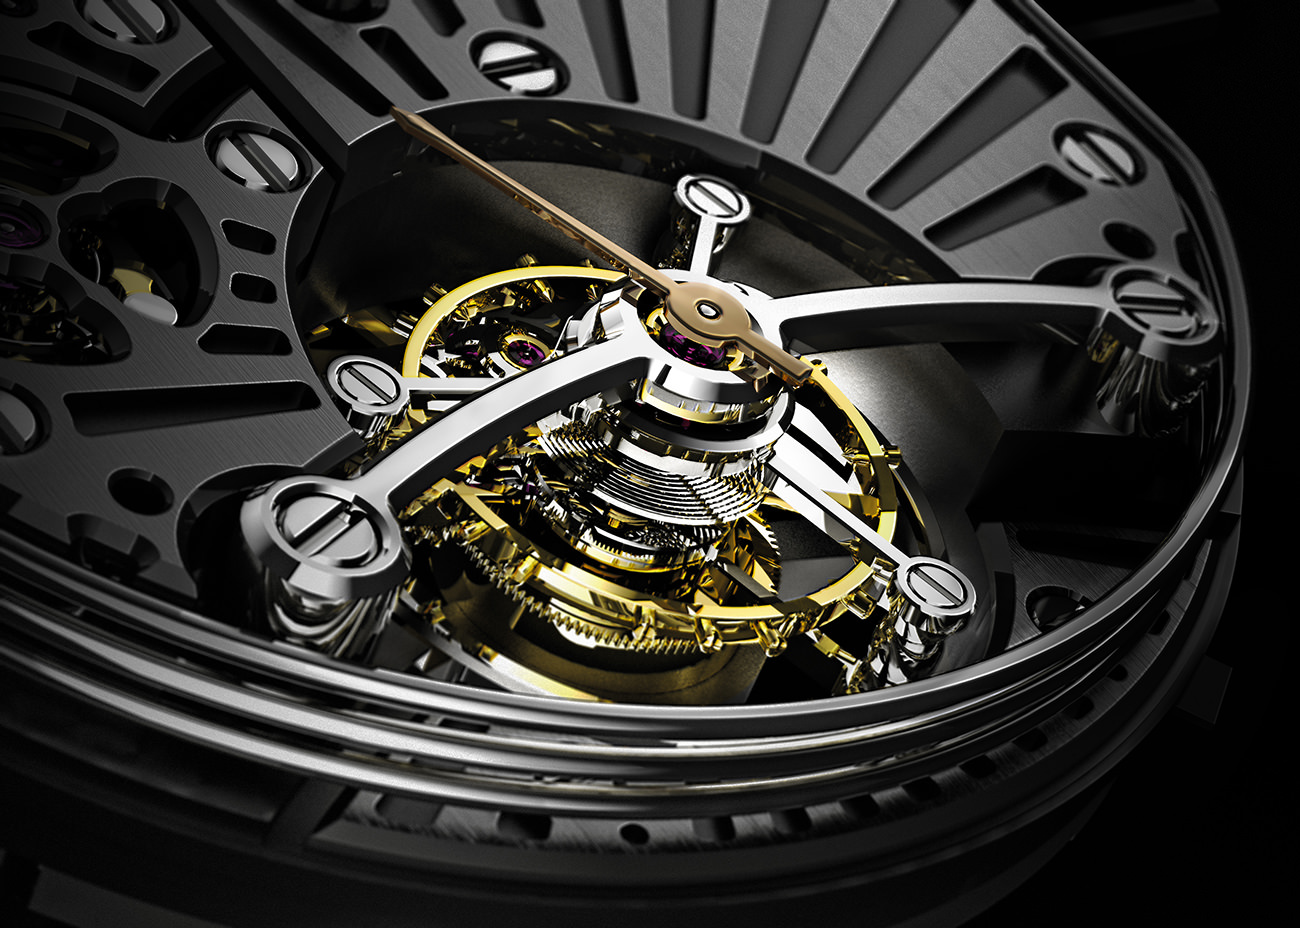 Bulgari-Carillon-Tourbillon-4